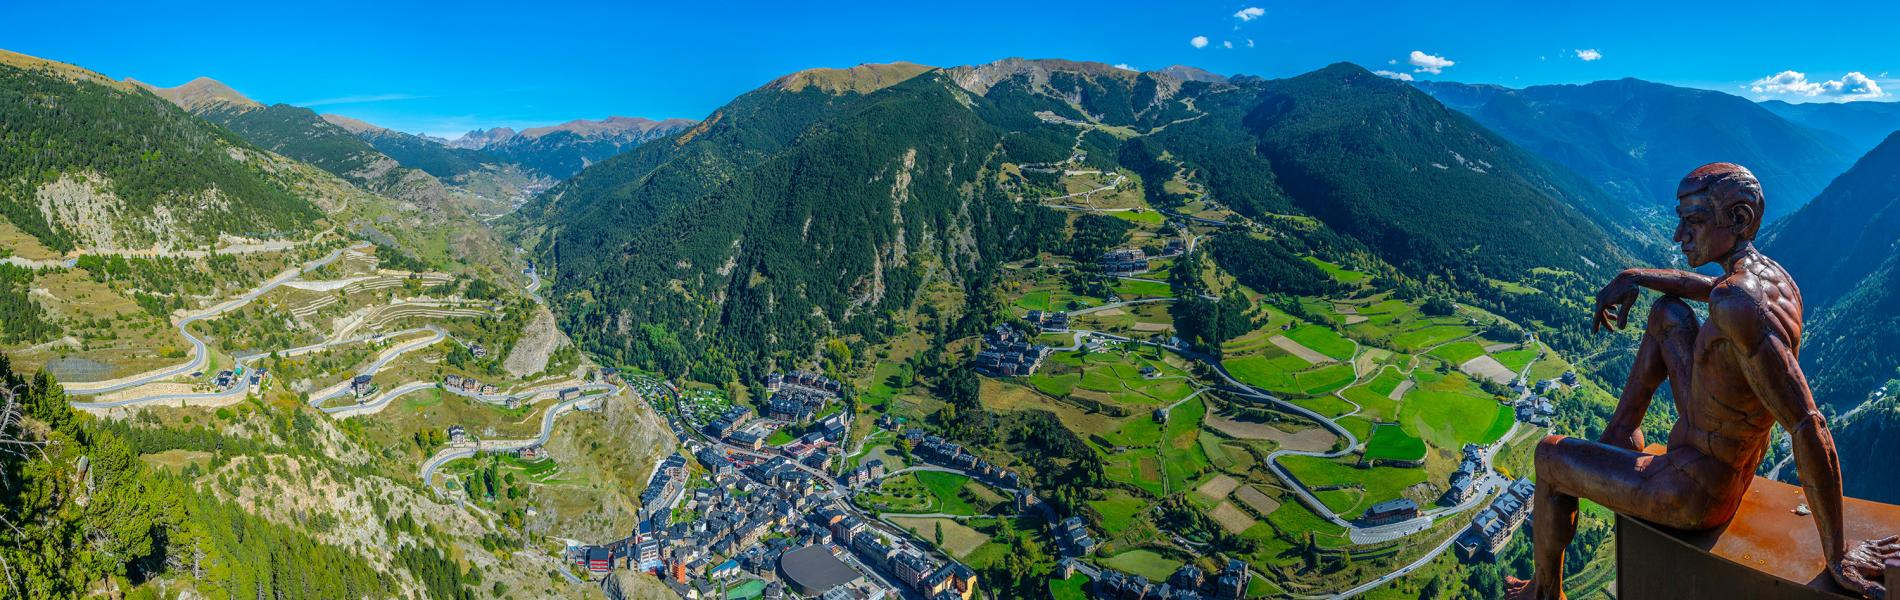 COTR - Mountain Tourism and Sustainability Field School in Andorra